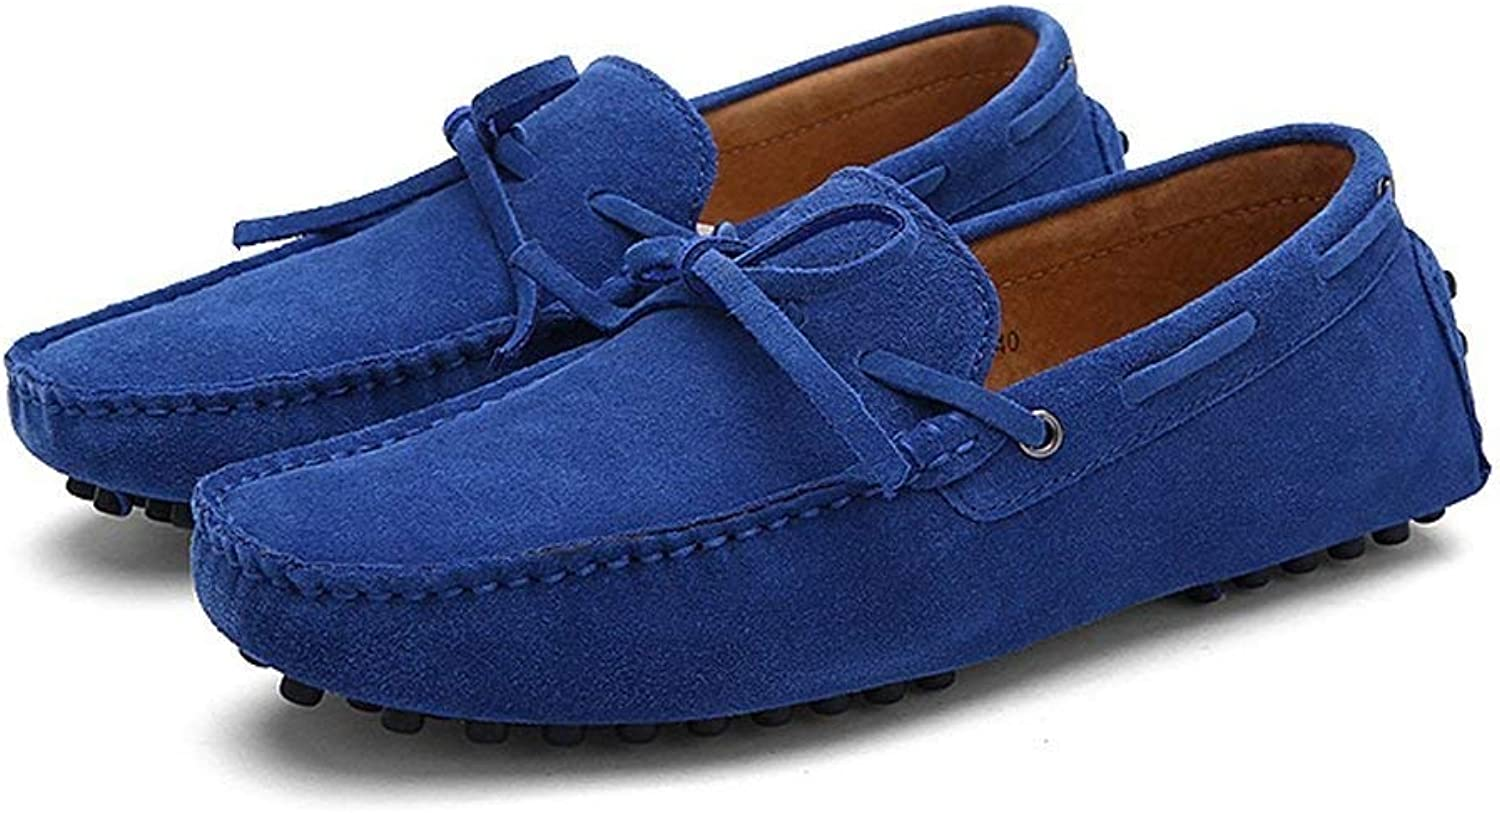 Oudan Men's Moccasins shoes, Men Driving Penny Loafers Genuine Leather Boot Lightweight Moccasins (color  bluee, Size  49 EU) (color   As shown, Size   One size)